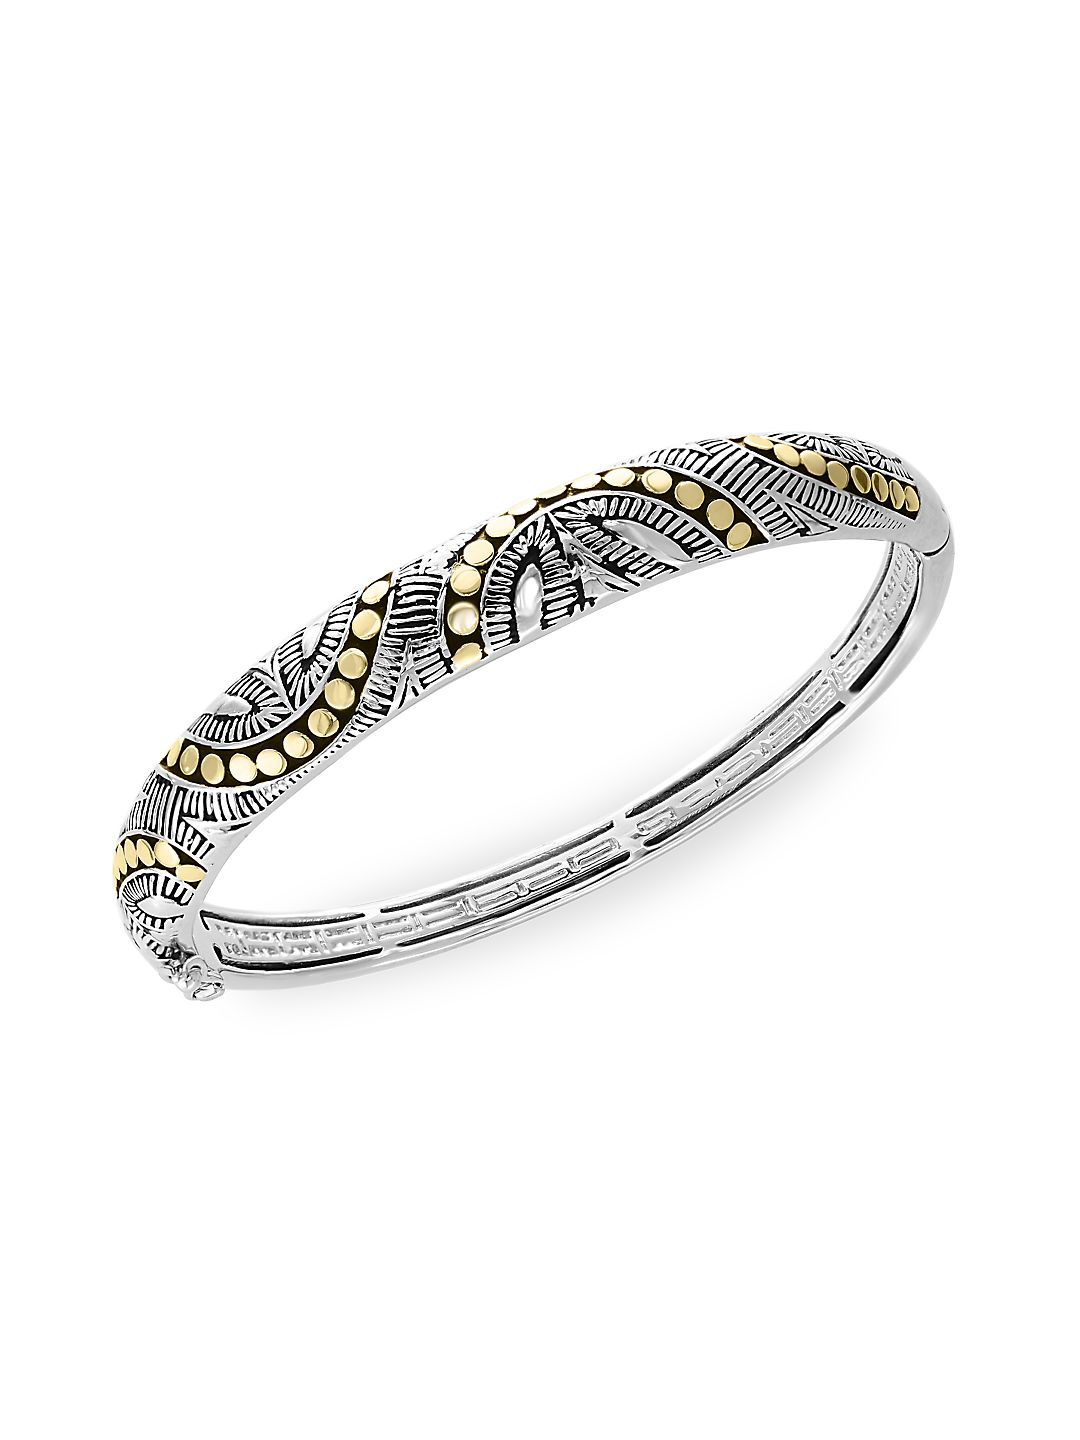 925 Sterling Silver and 18K Yellow Gold Bangle Bracelet